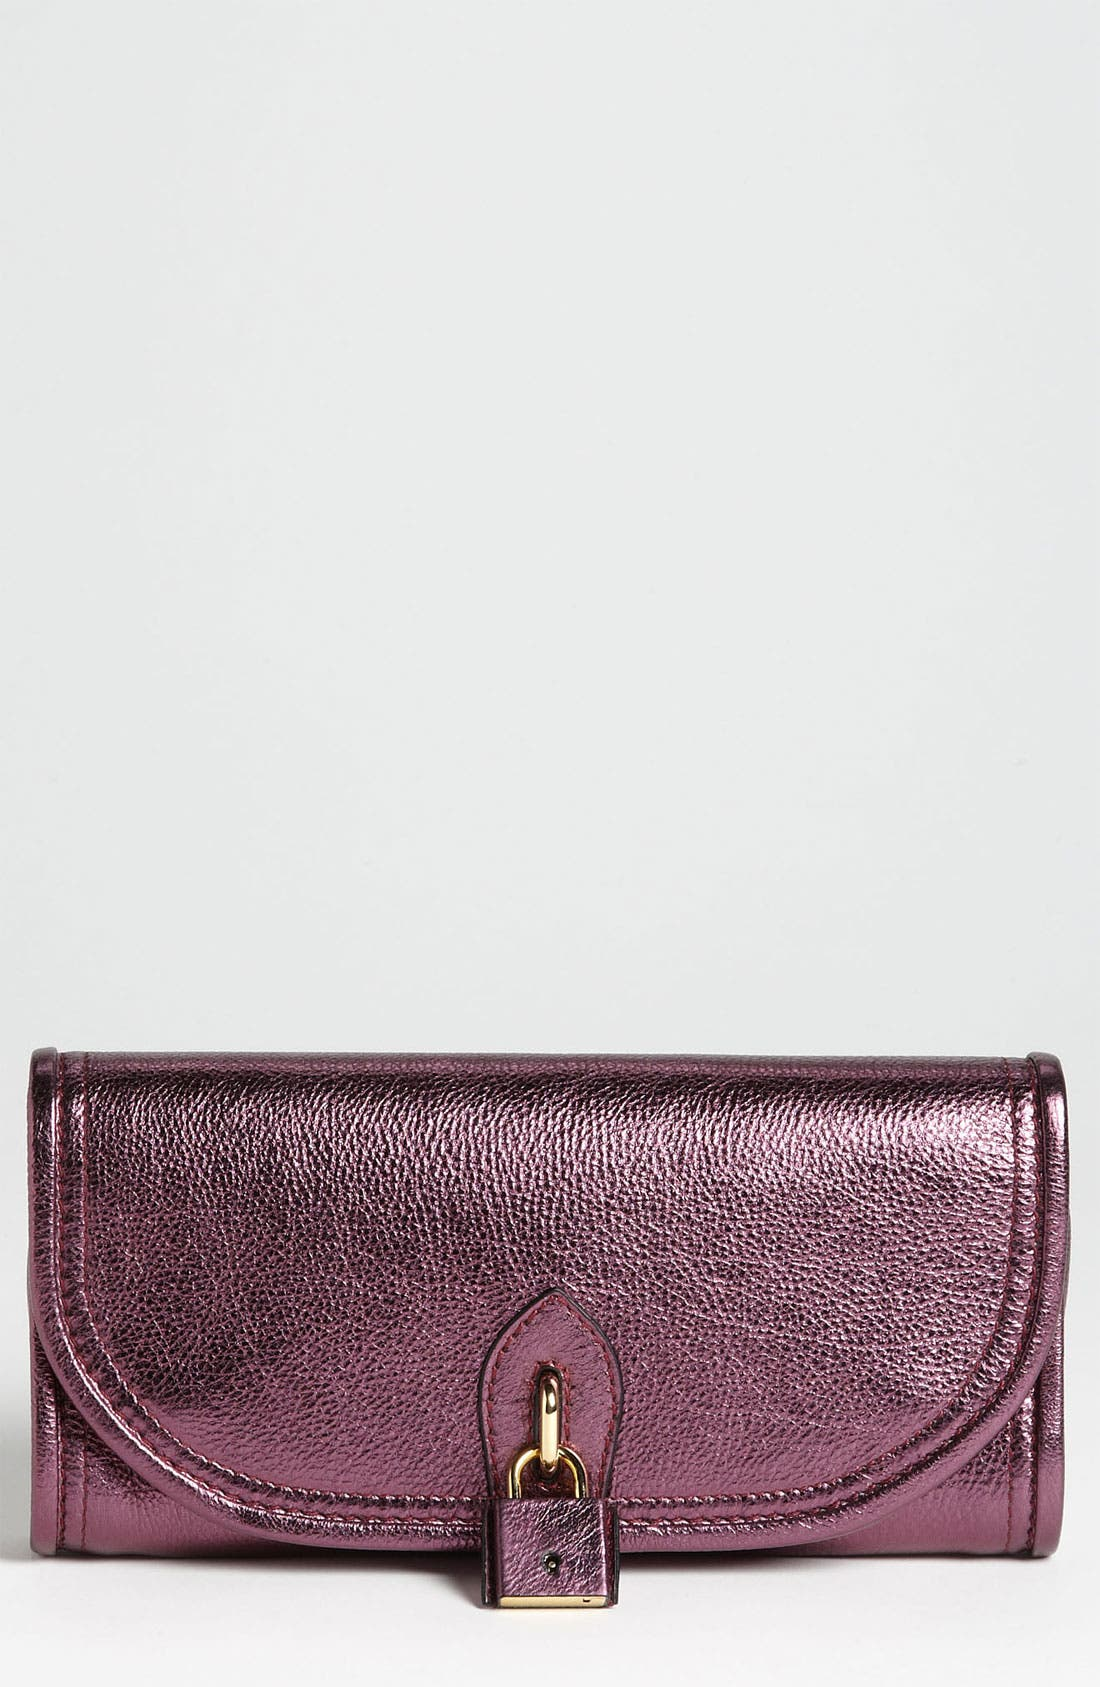 Main Image - Burberry 'Mayfield' Metallic Leather Clutch